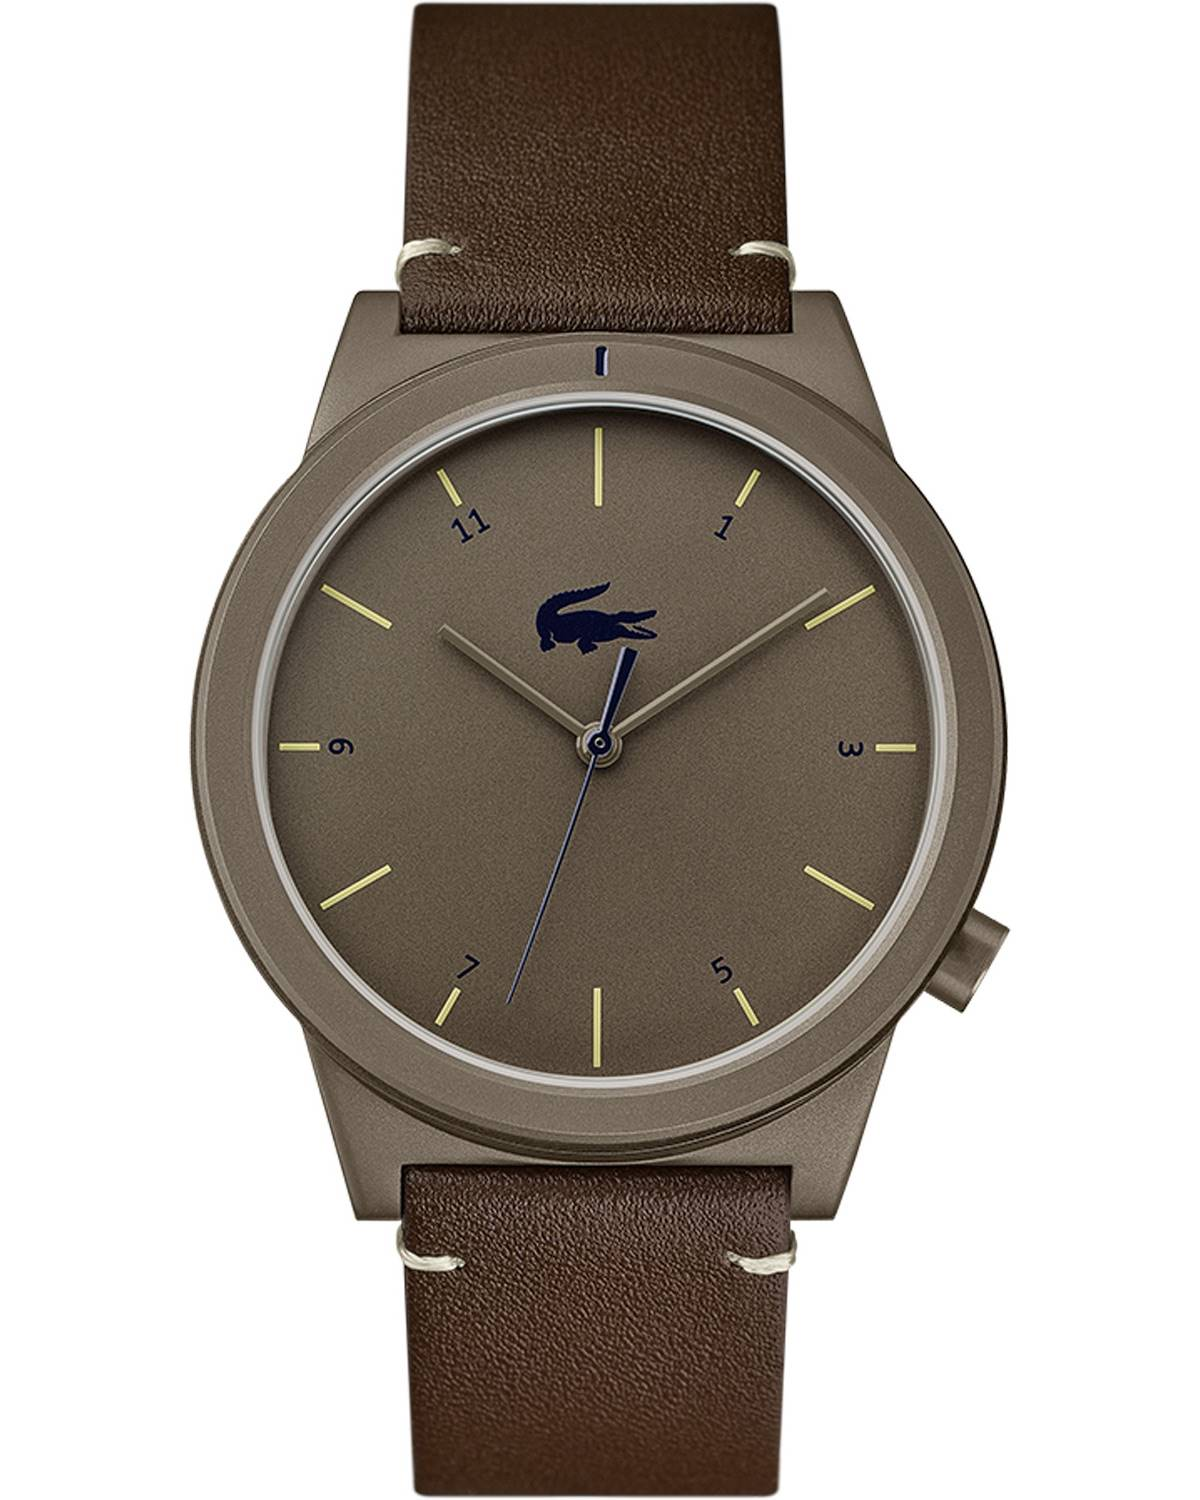 4cead38a25 Ρολόι LACOSTE Motion Brown Leather Strap - 2010992 - OROLOI.gr